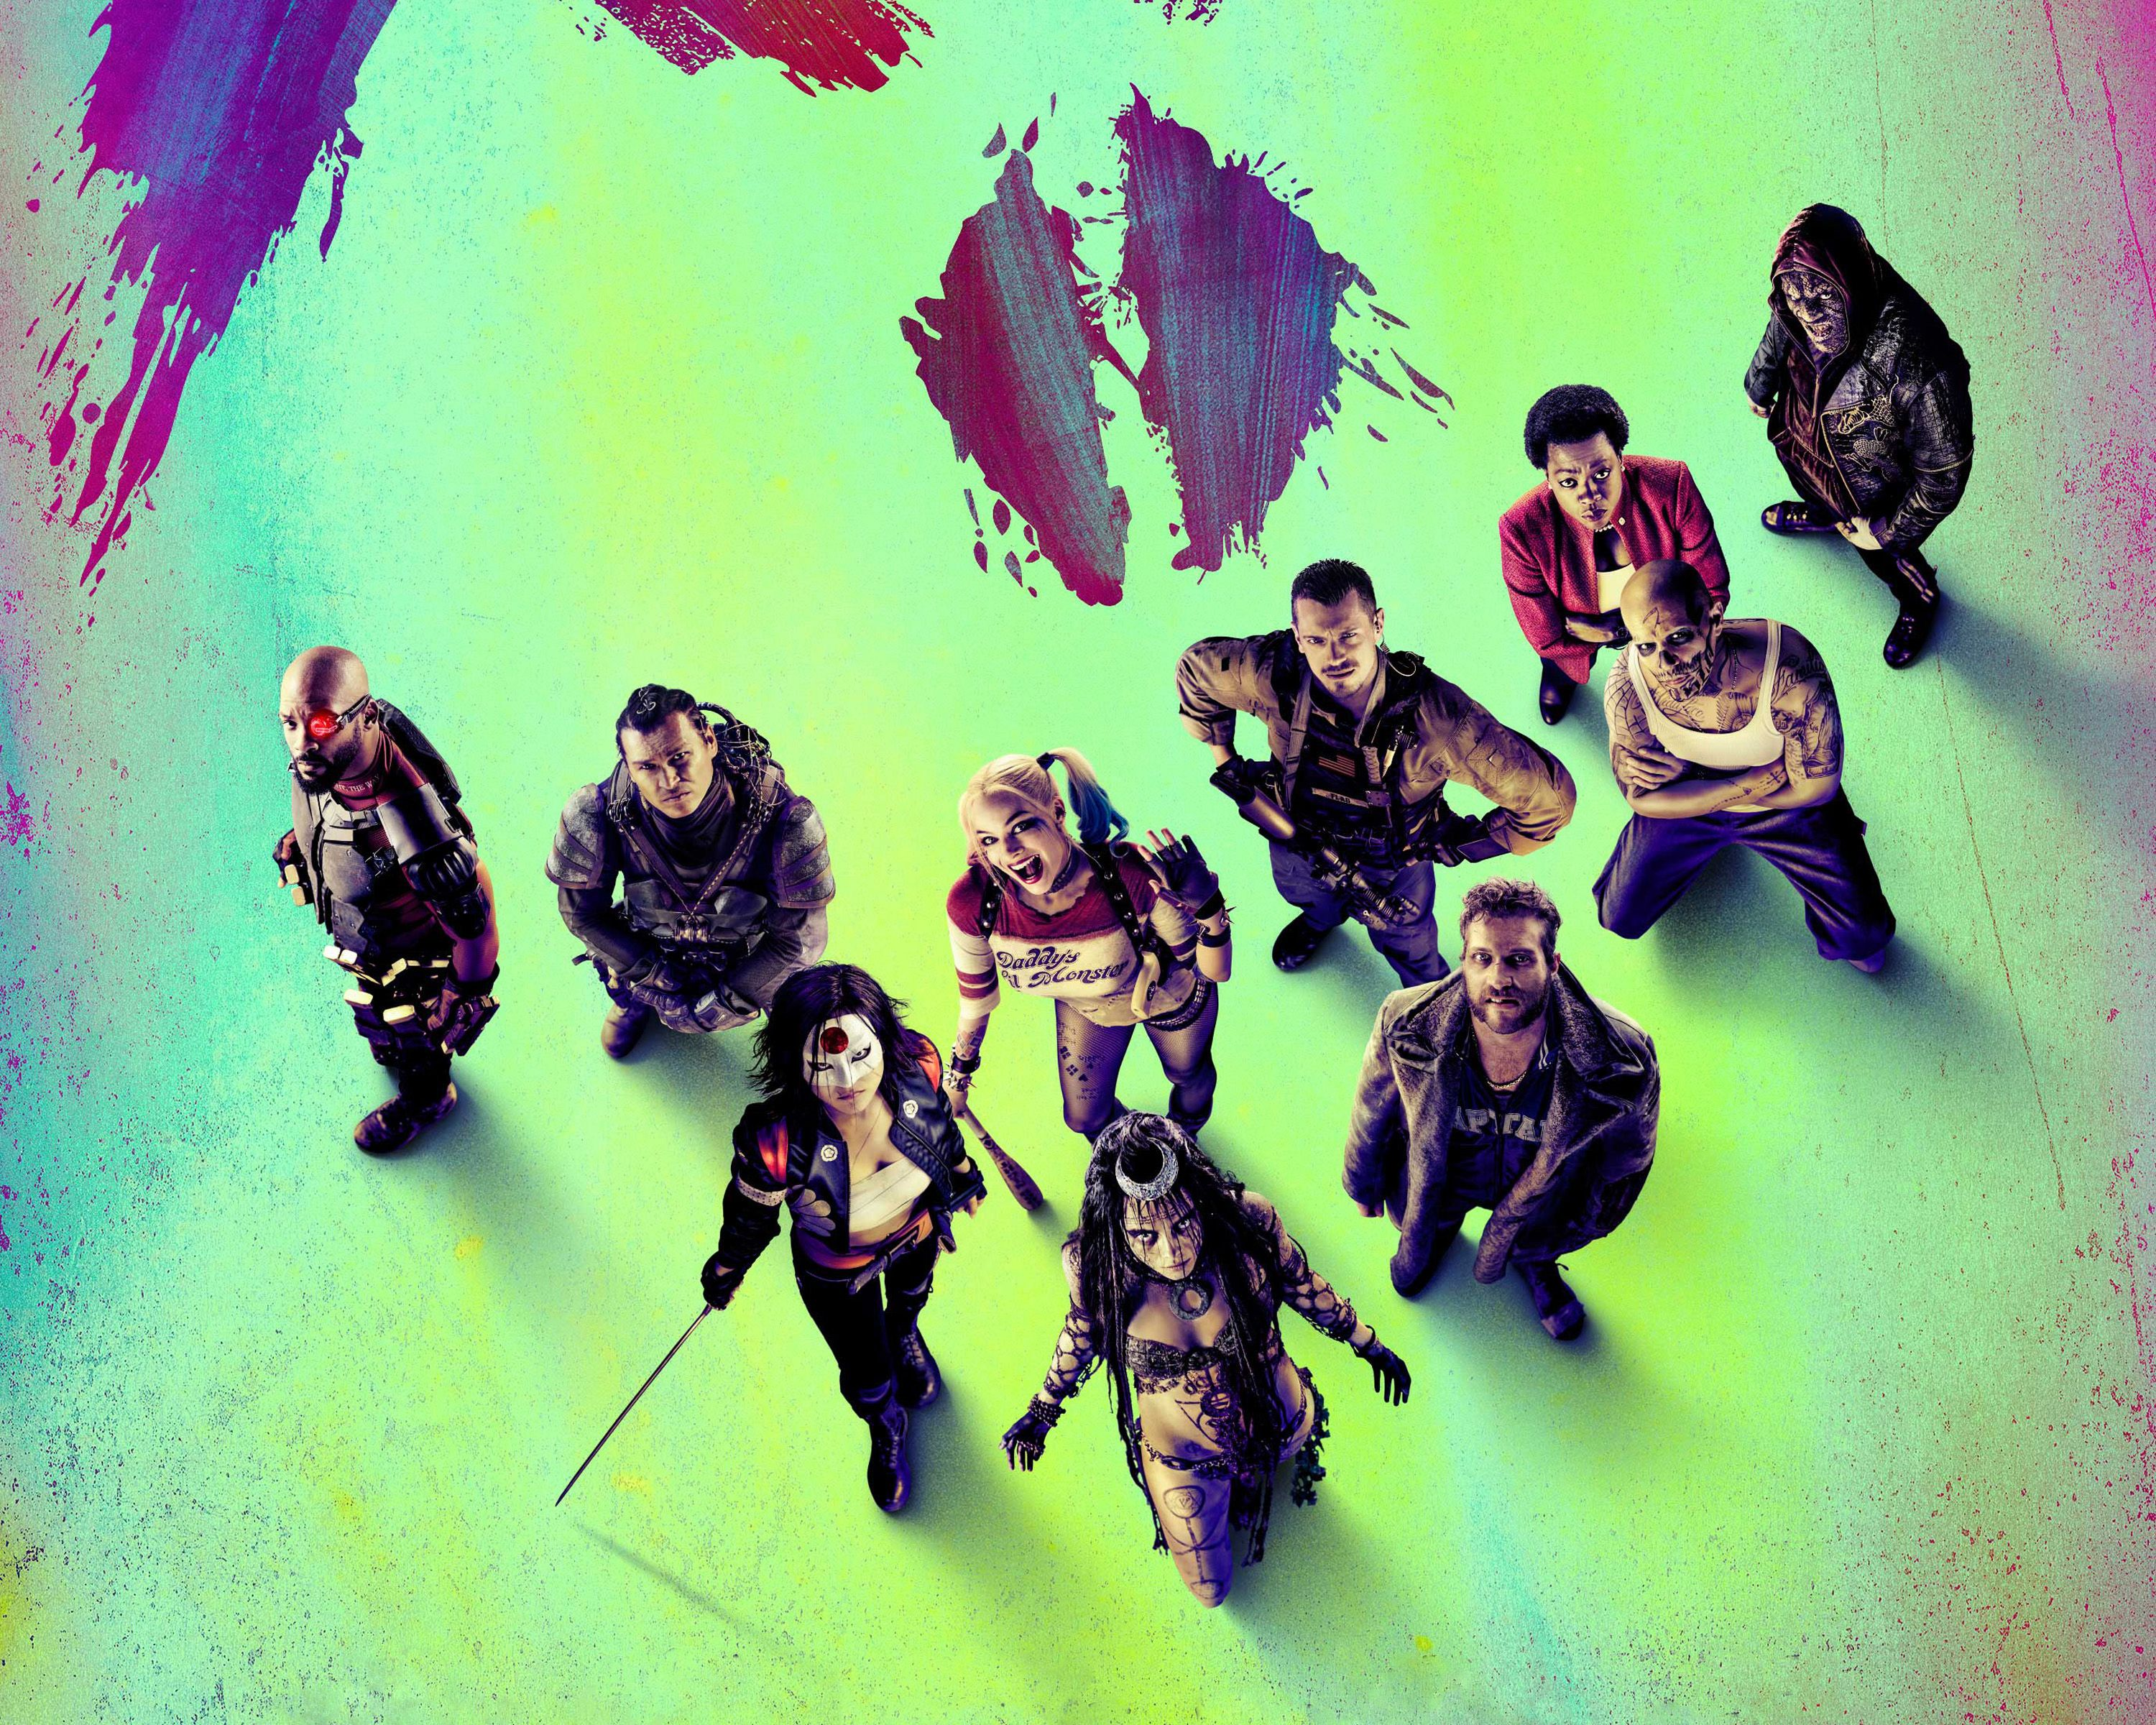 Suicide Squad Movie 4K Widescreen Desktop Wallpapers 1143 3000x2400 px ~ PickyWallpapers